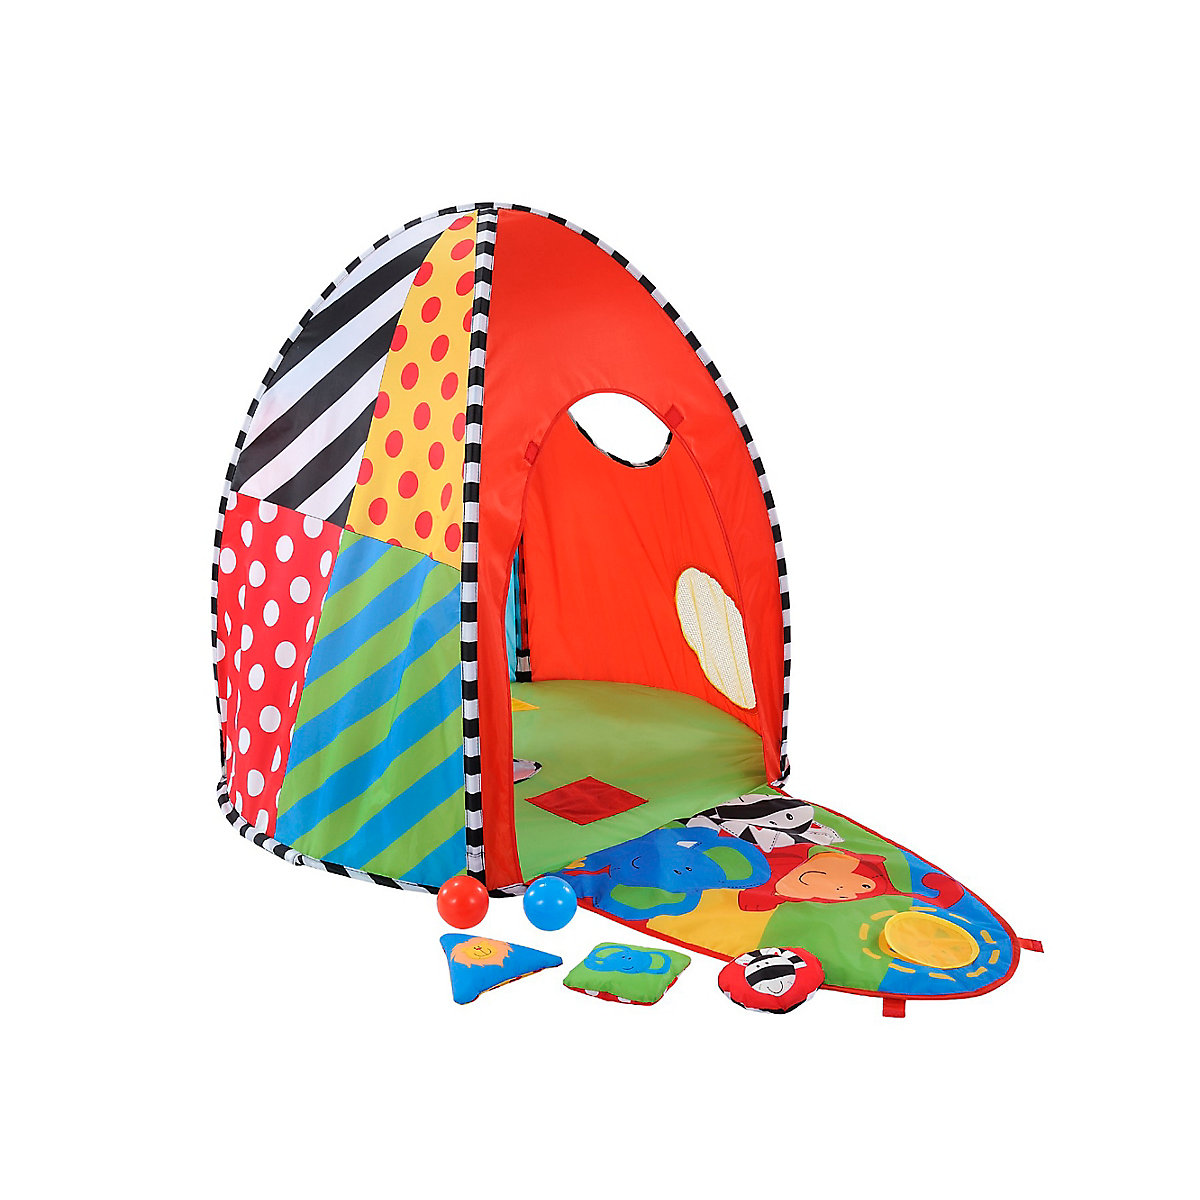 Sensory Dome Toy From 9 months